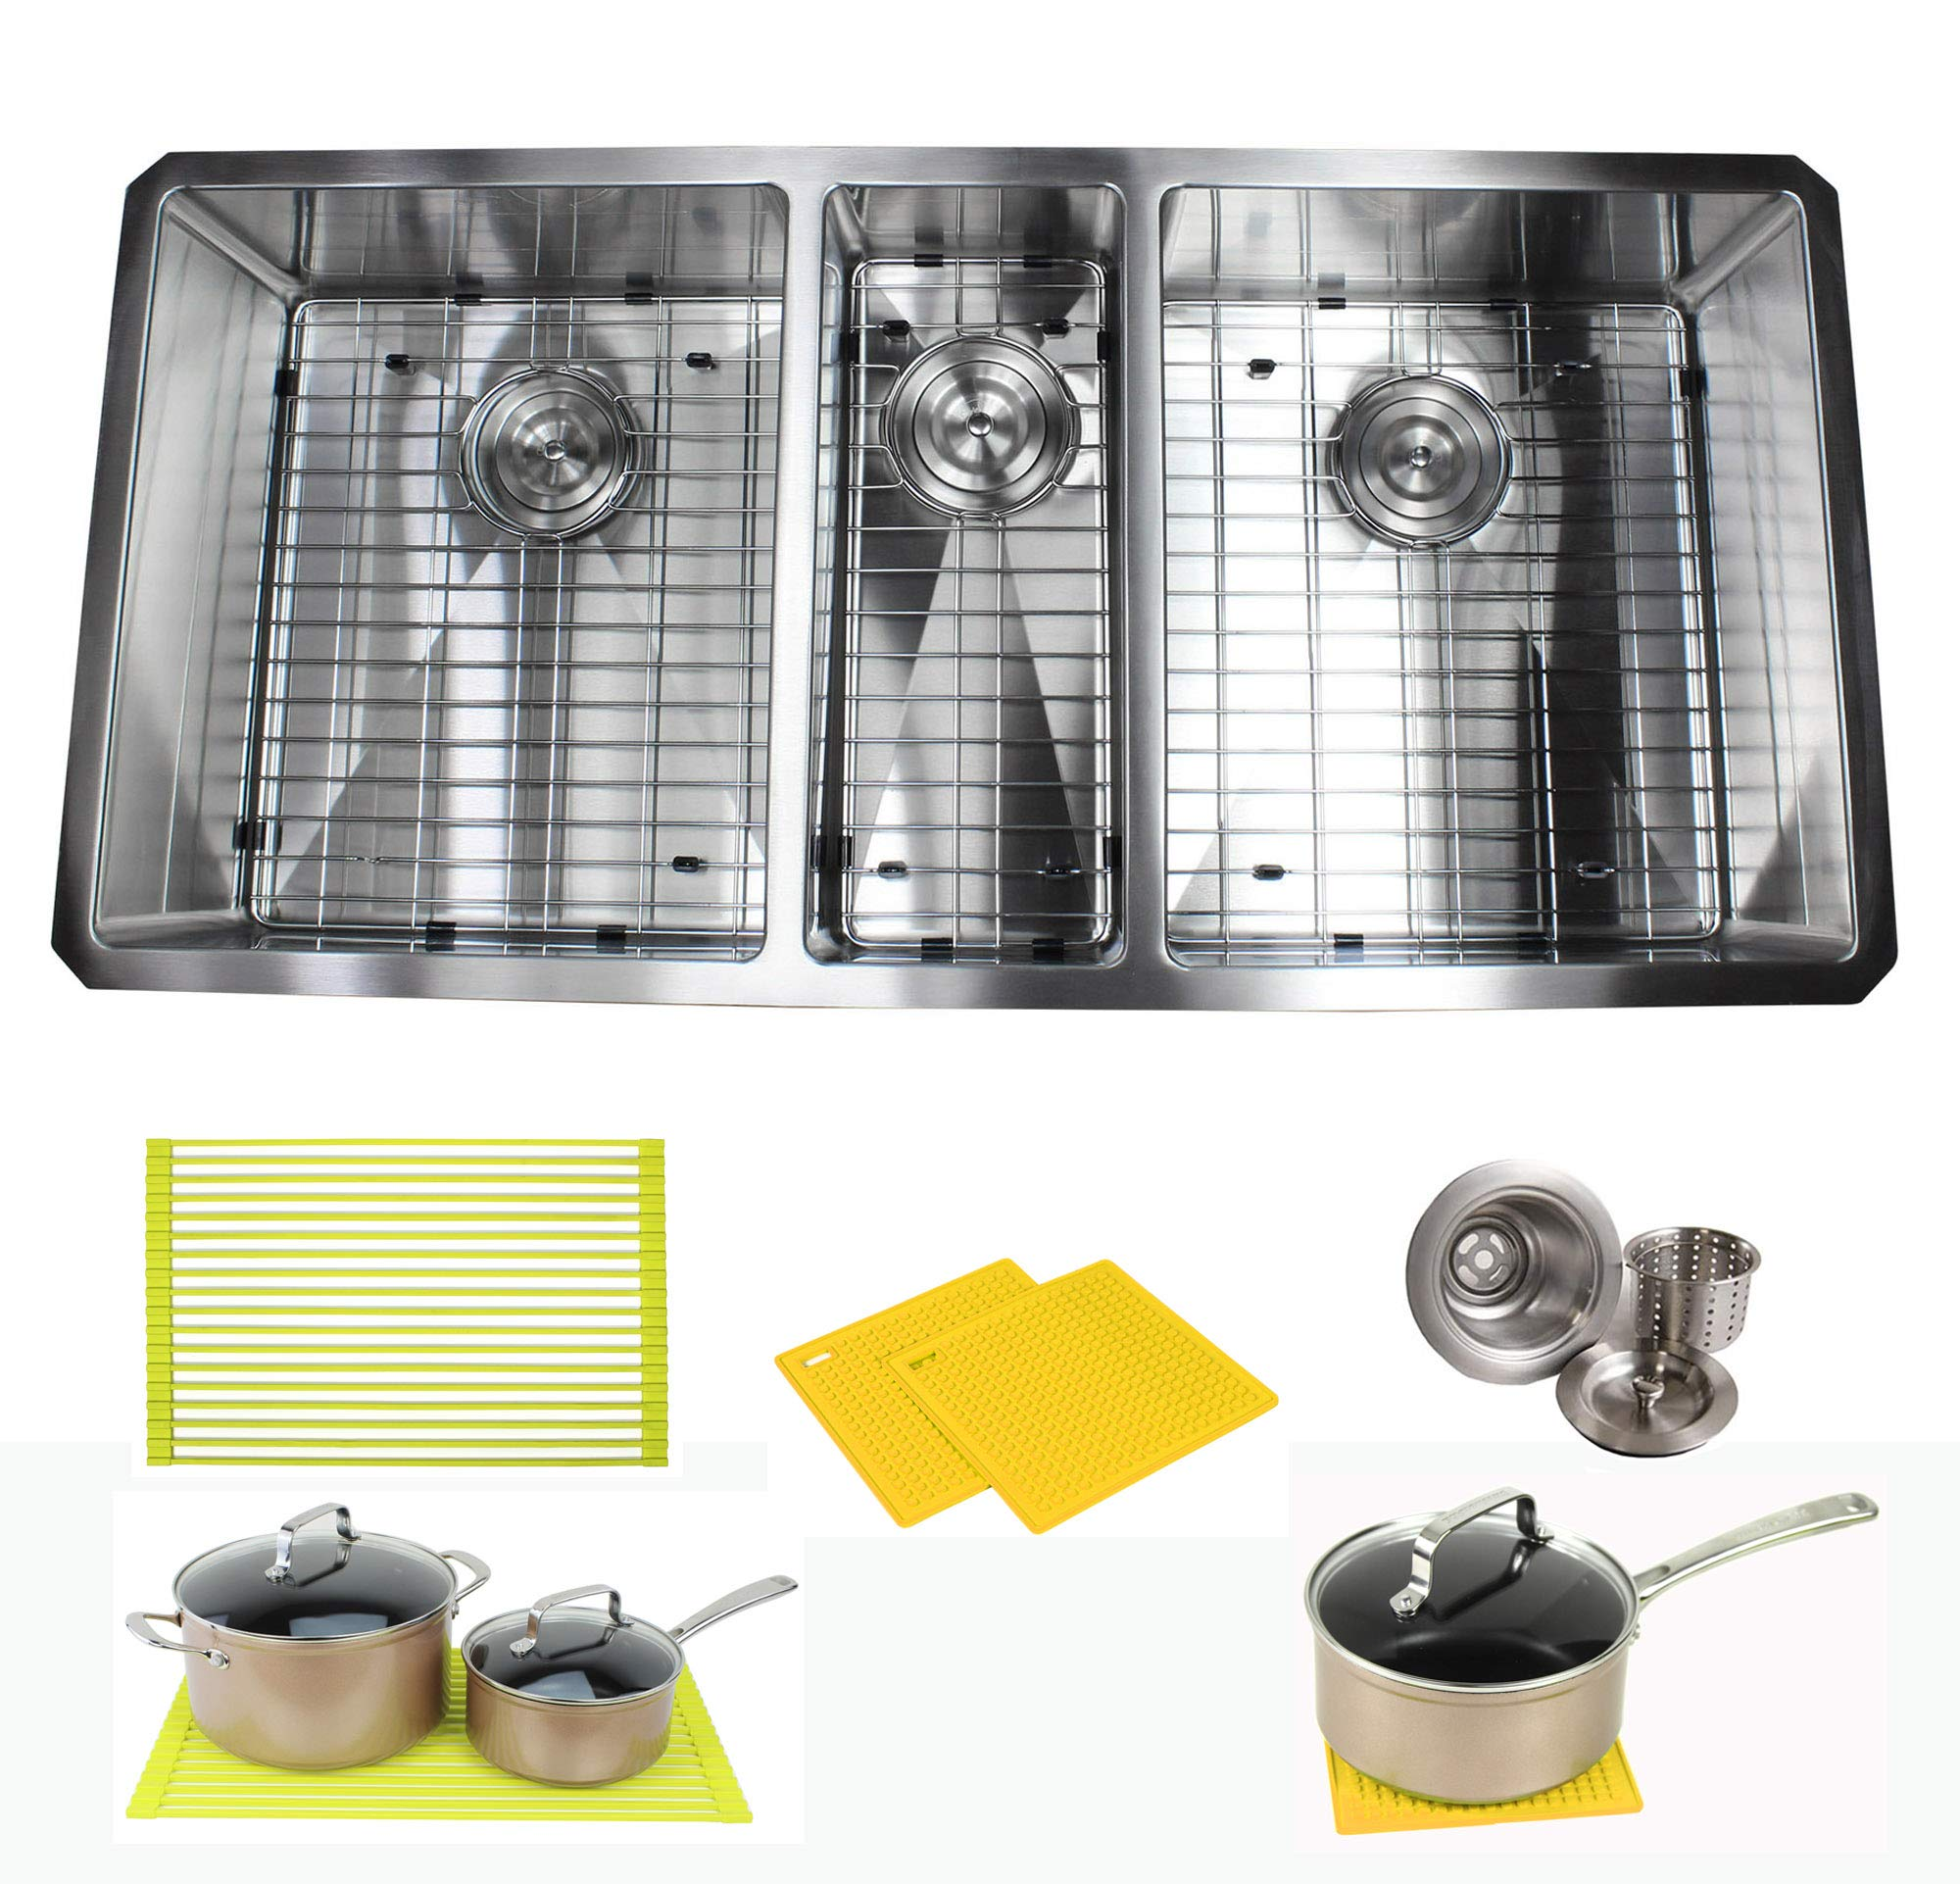 Premium 42 Inch Stainless Steel Triple Bowl Super Sized Kitchen Sink Package - 16 Gauge Undermount Basin - Complete Sink Pack + Bonus Kitchen Accessories - Ideal For Kitchen Renovation by CBath